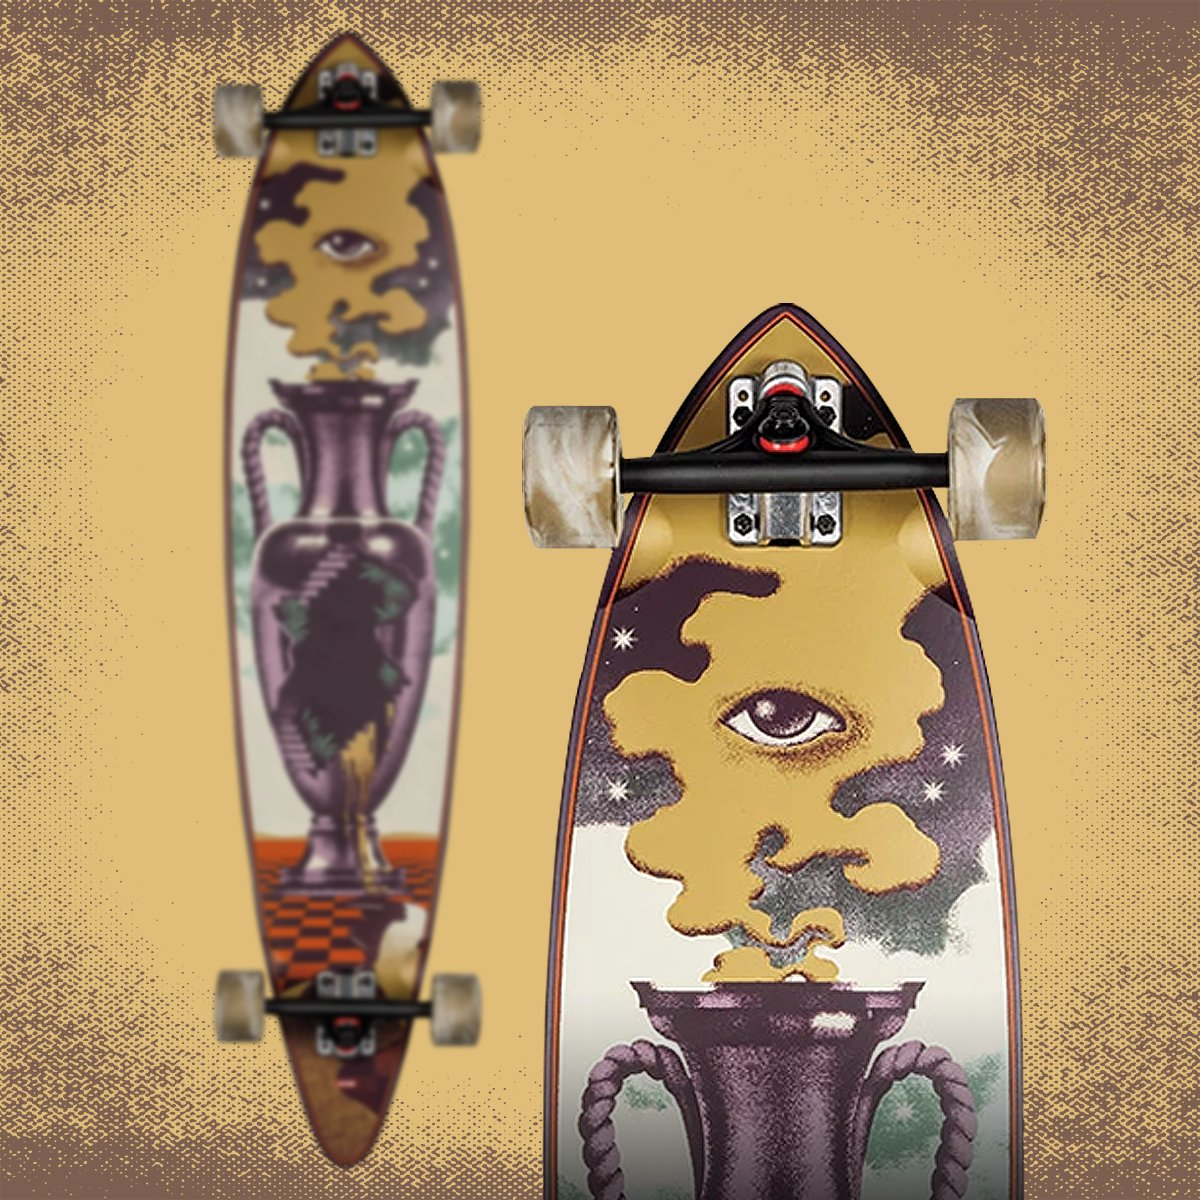 """The Globe Outpost pintail complete measures 9.75""""x44"""" and includes reverse kingpin Slant trucks and 70mm Globe wheels. https://tgmskateboards.com/globe-longboard-pintail-44-outpost-9-75-x-44/… . #globe #globebrand #globeskateboards #longboard #longboarding #slanttrucks #pintail #skate #tgmskateboardspic.twitter.com/AIkBetR6Qs"""